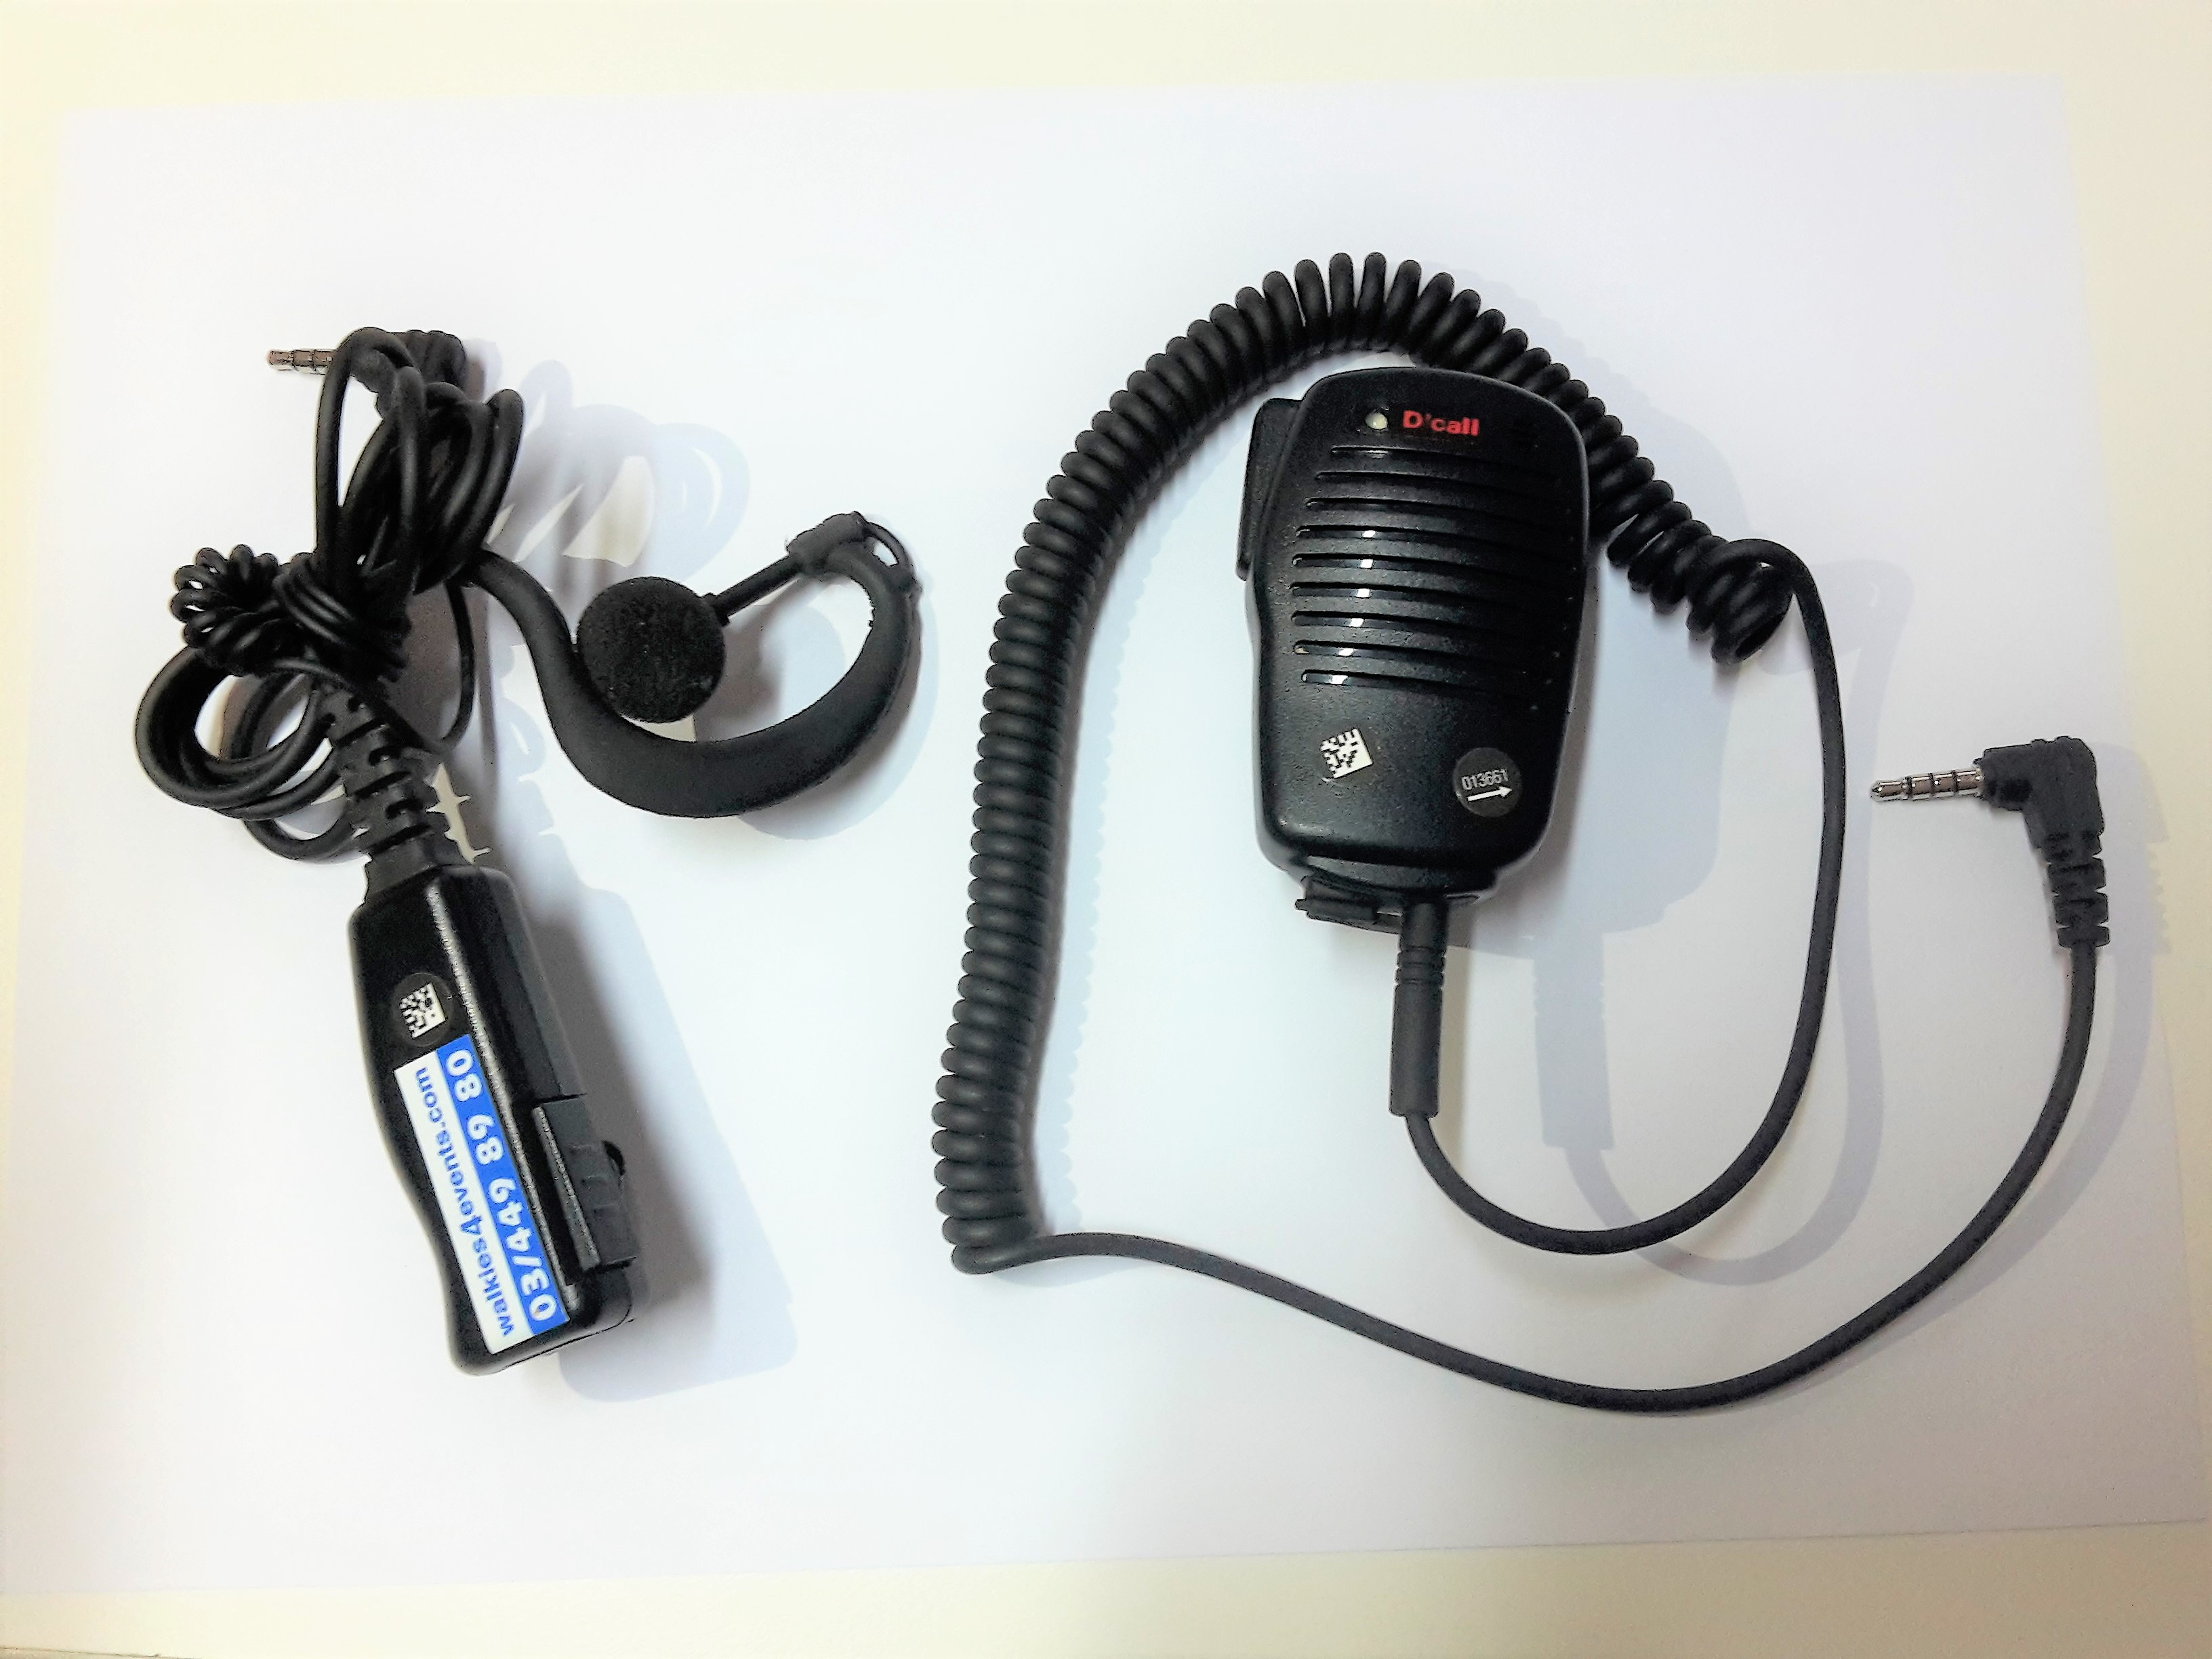 Walkies4Events - Accessoires SIM Trunk-walkietalkies: oortjes en microluidspreker